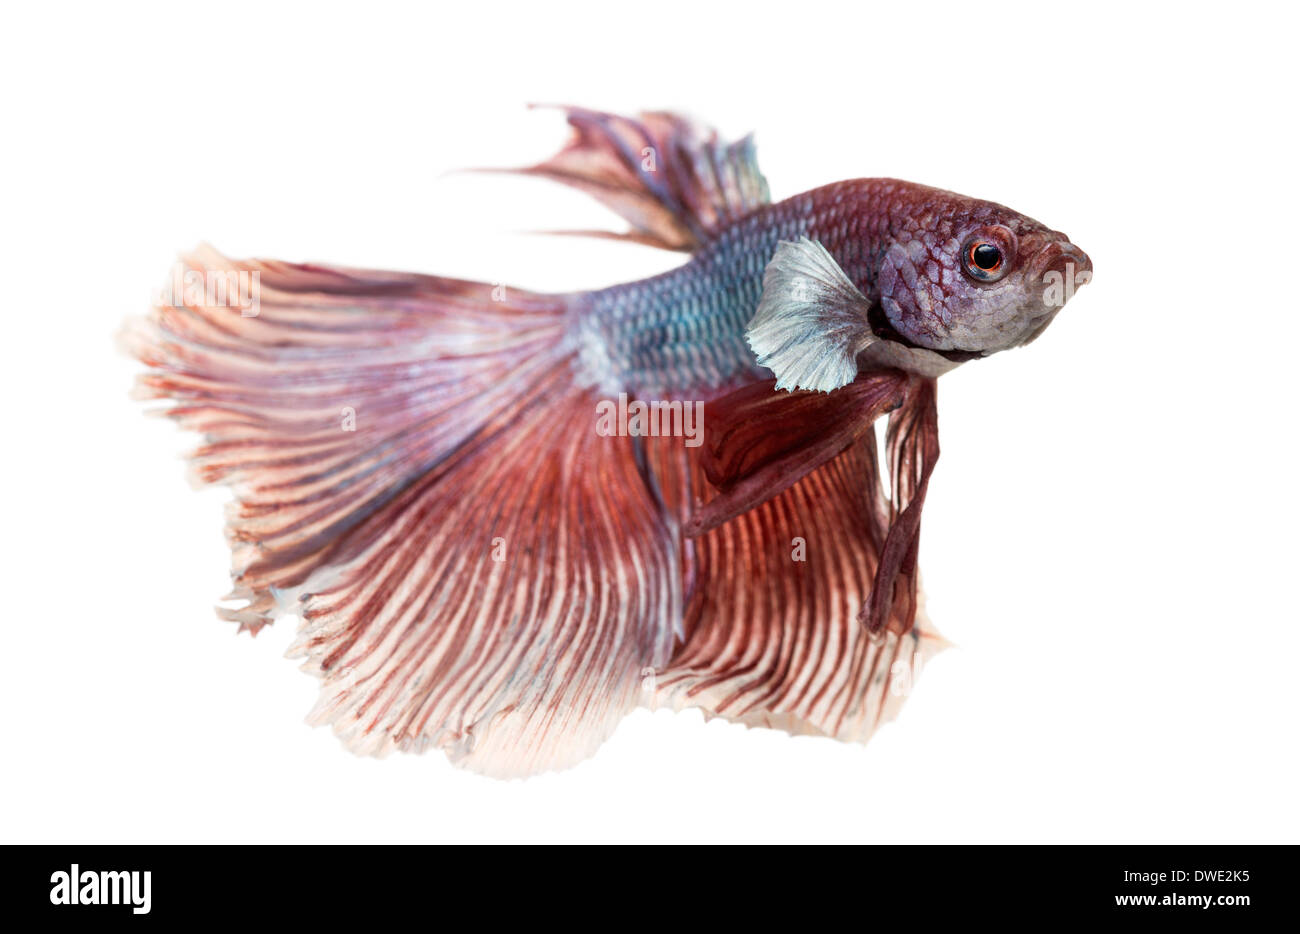 Side view of a Siamese fighting fish, Betta splendens, against white background - Stock Image